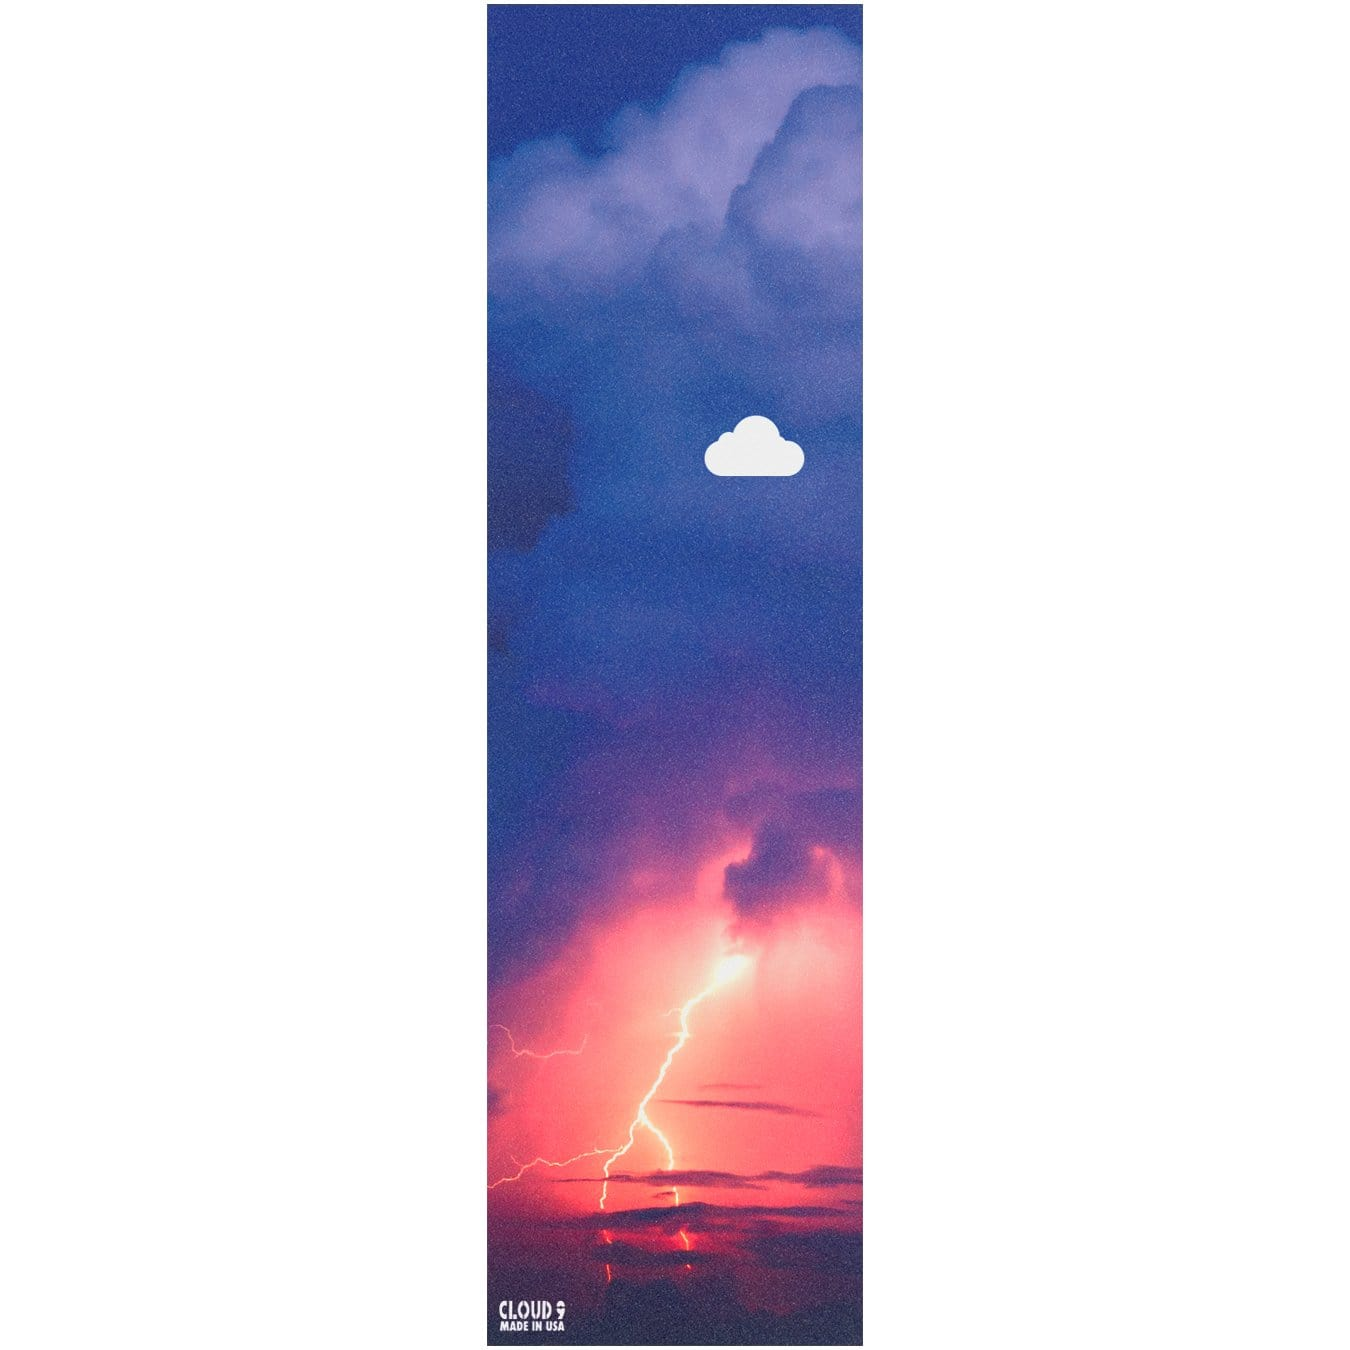 Cloud 9 Summer Storm Graphic Grip Tape | Cloud9Griptape.com